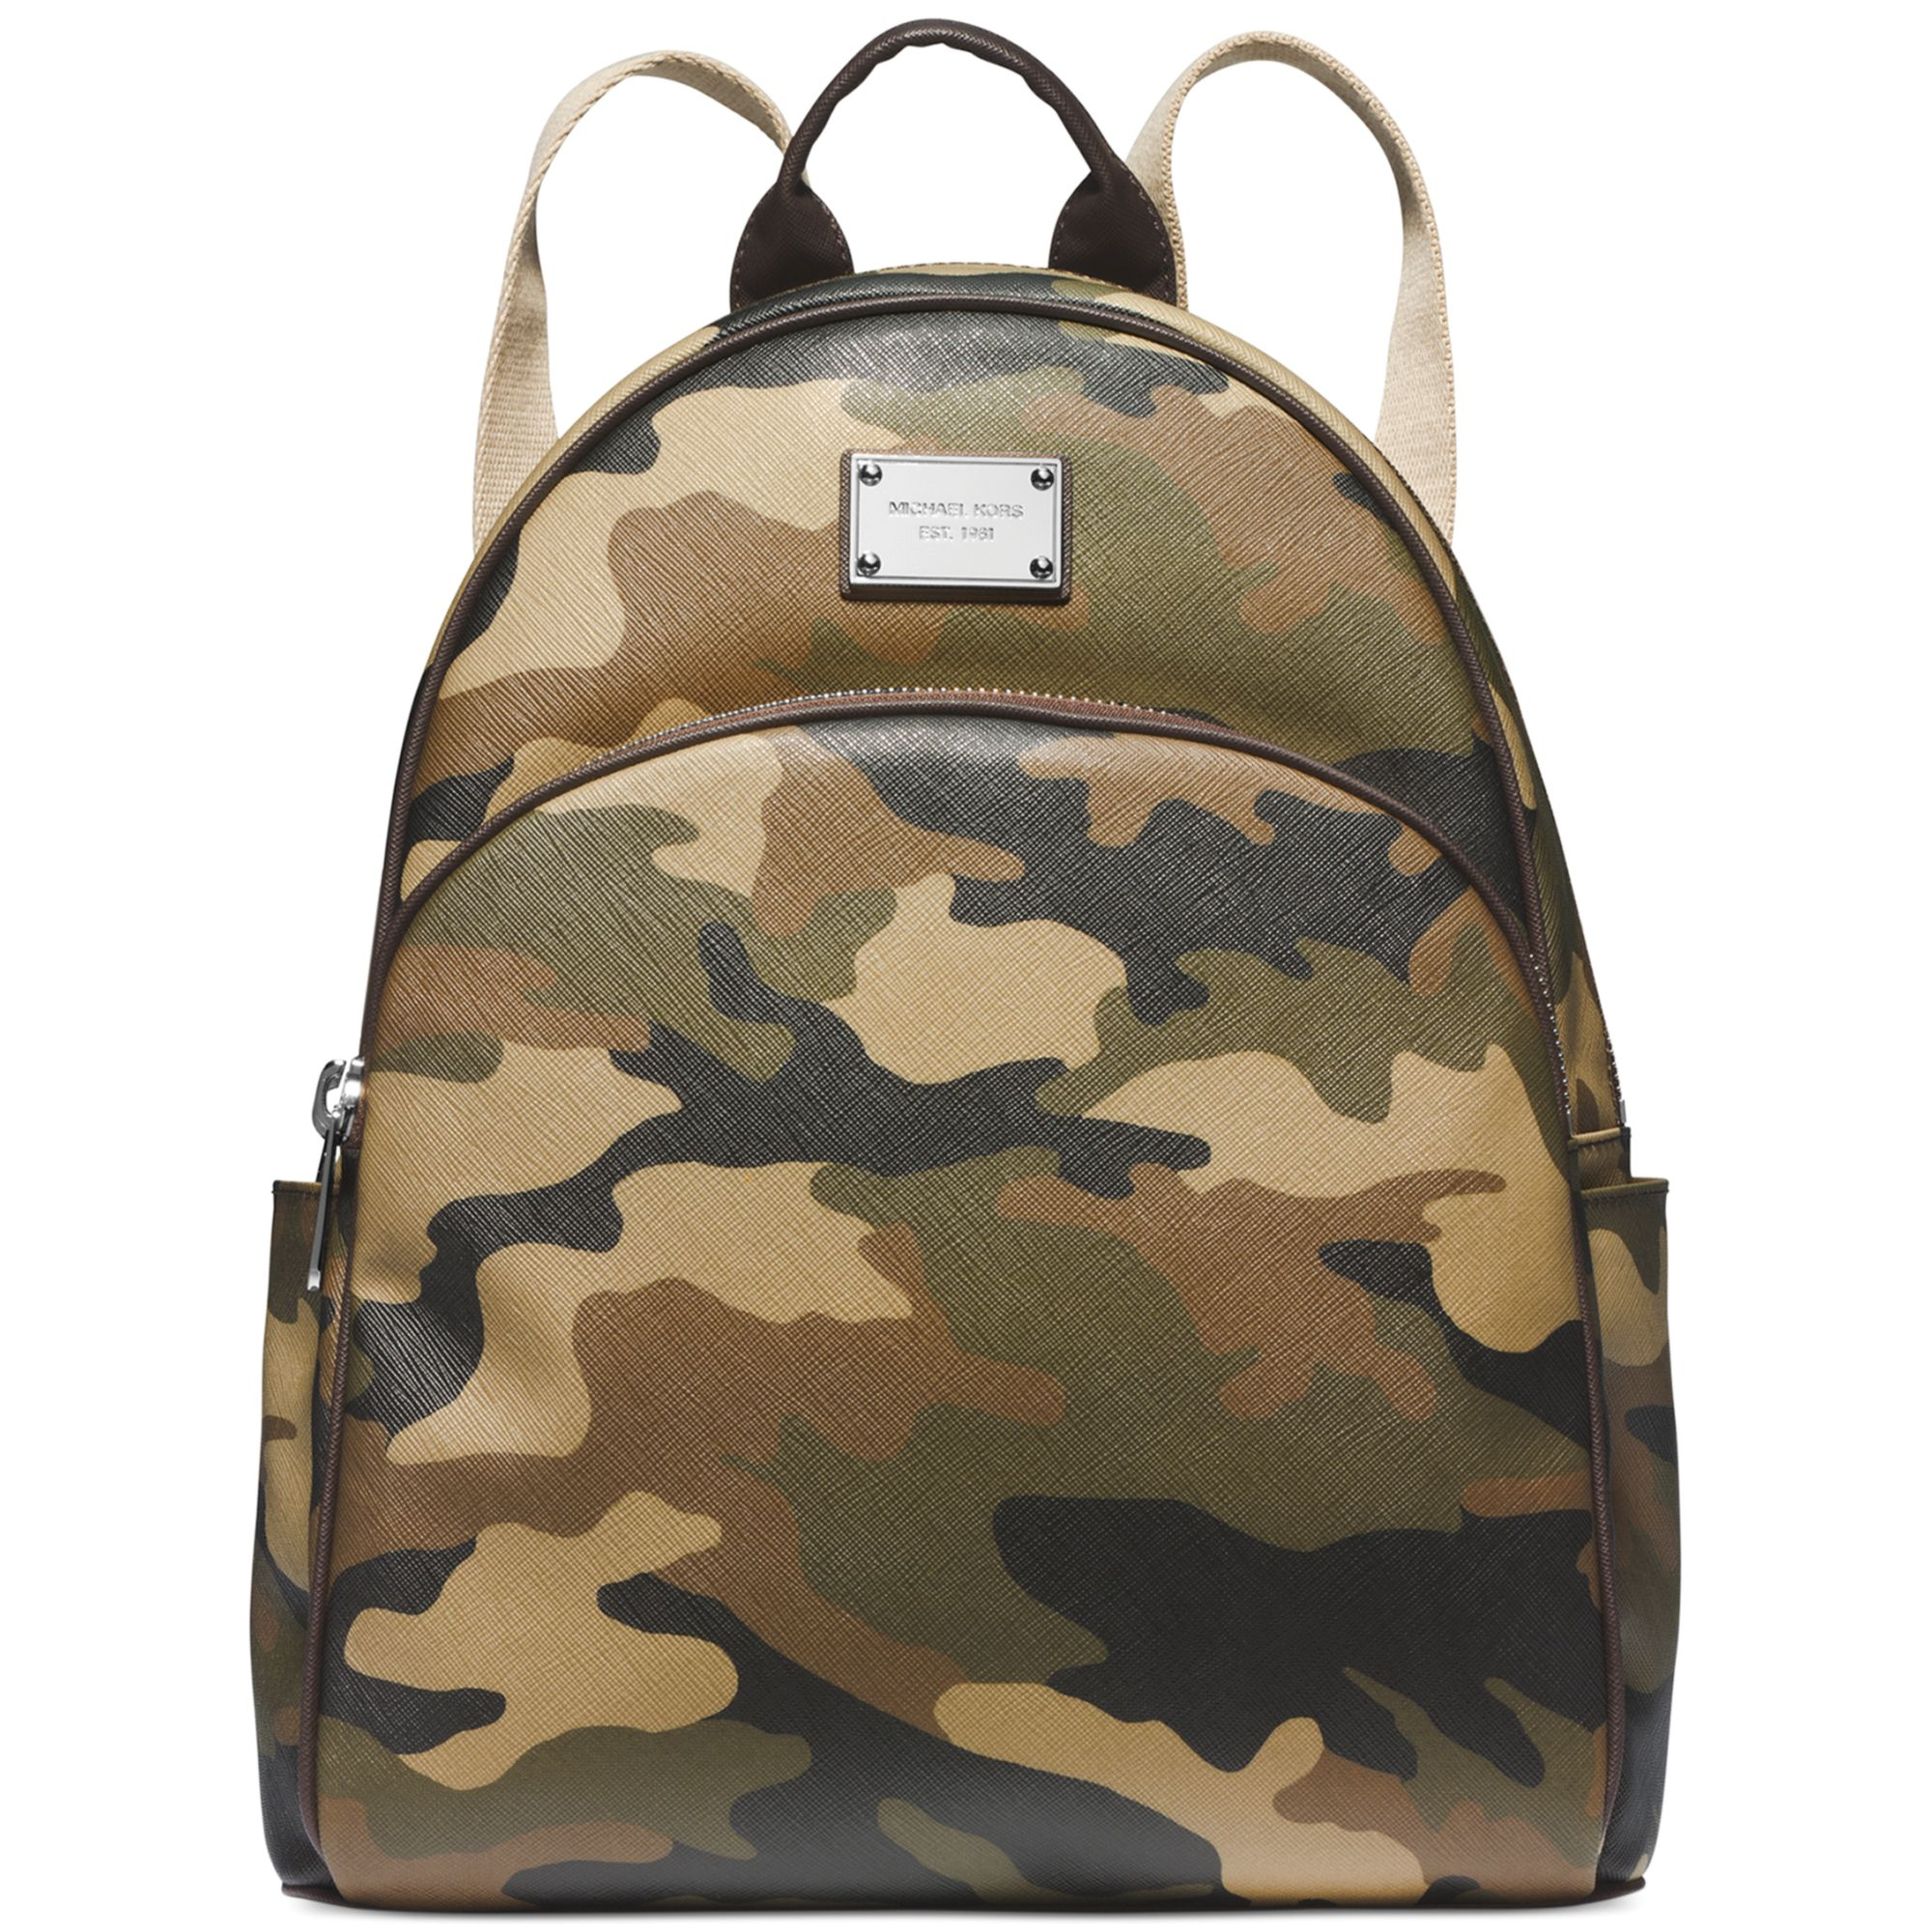 michael kors michael large camo backpack in green duffel lyst. Black Bedroom Furniture Sets. Home Design Ideas